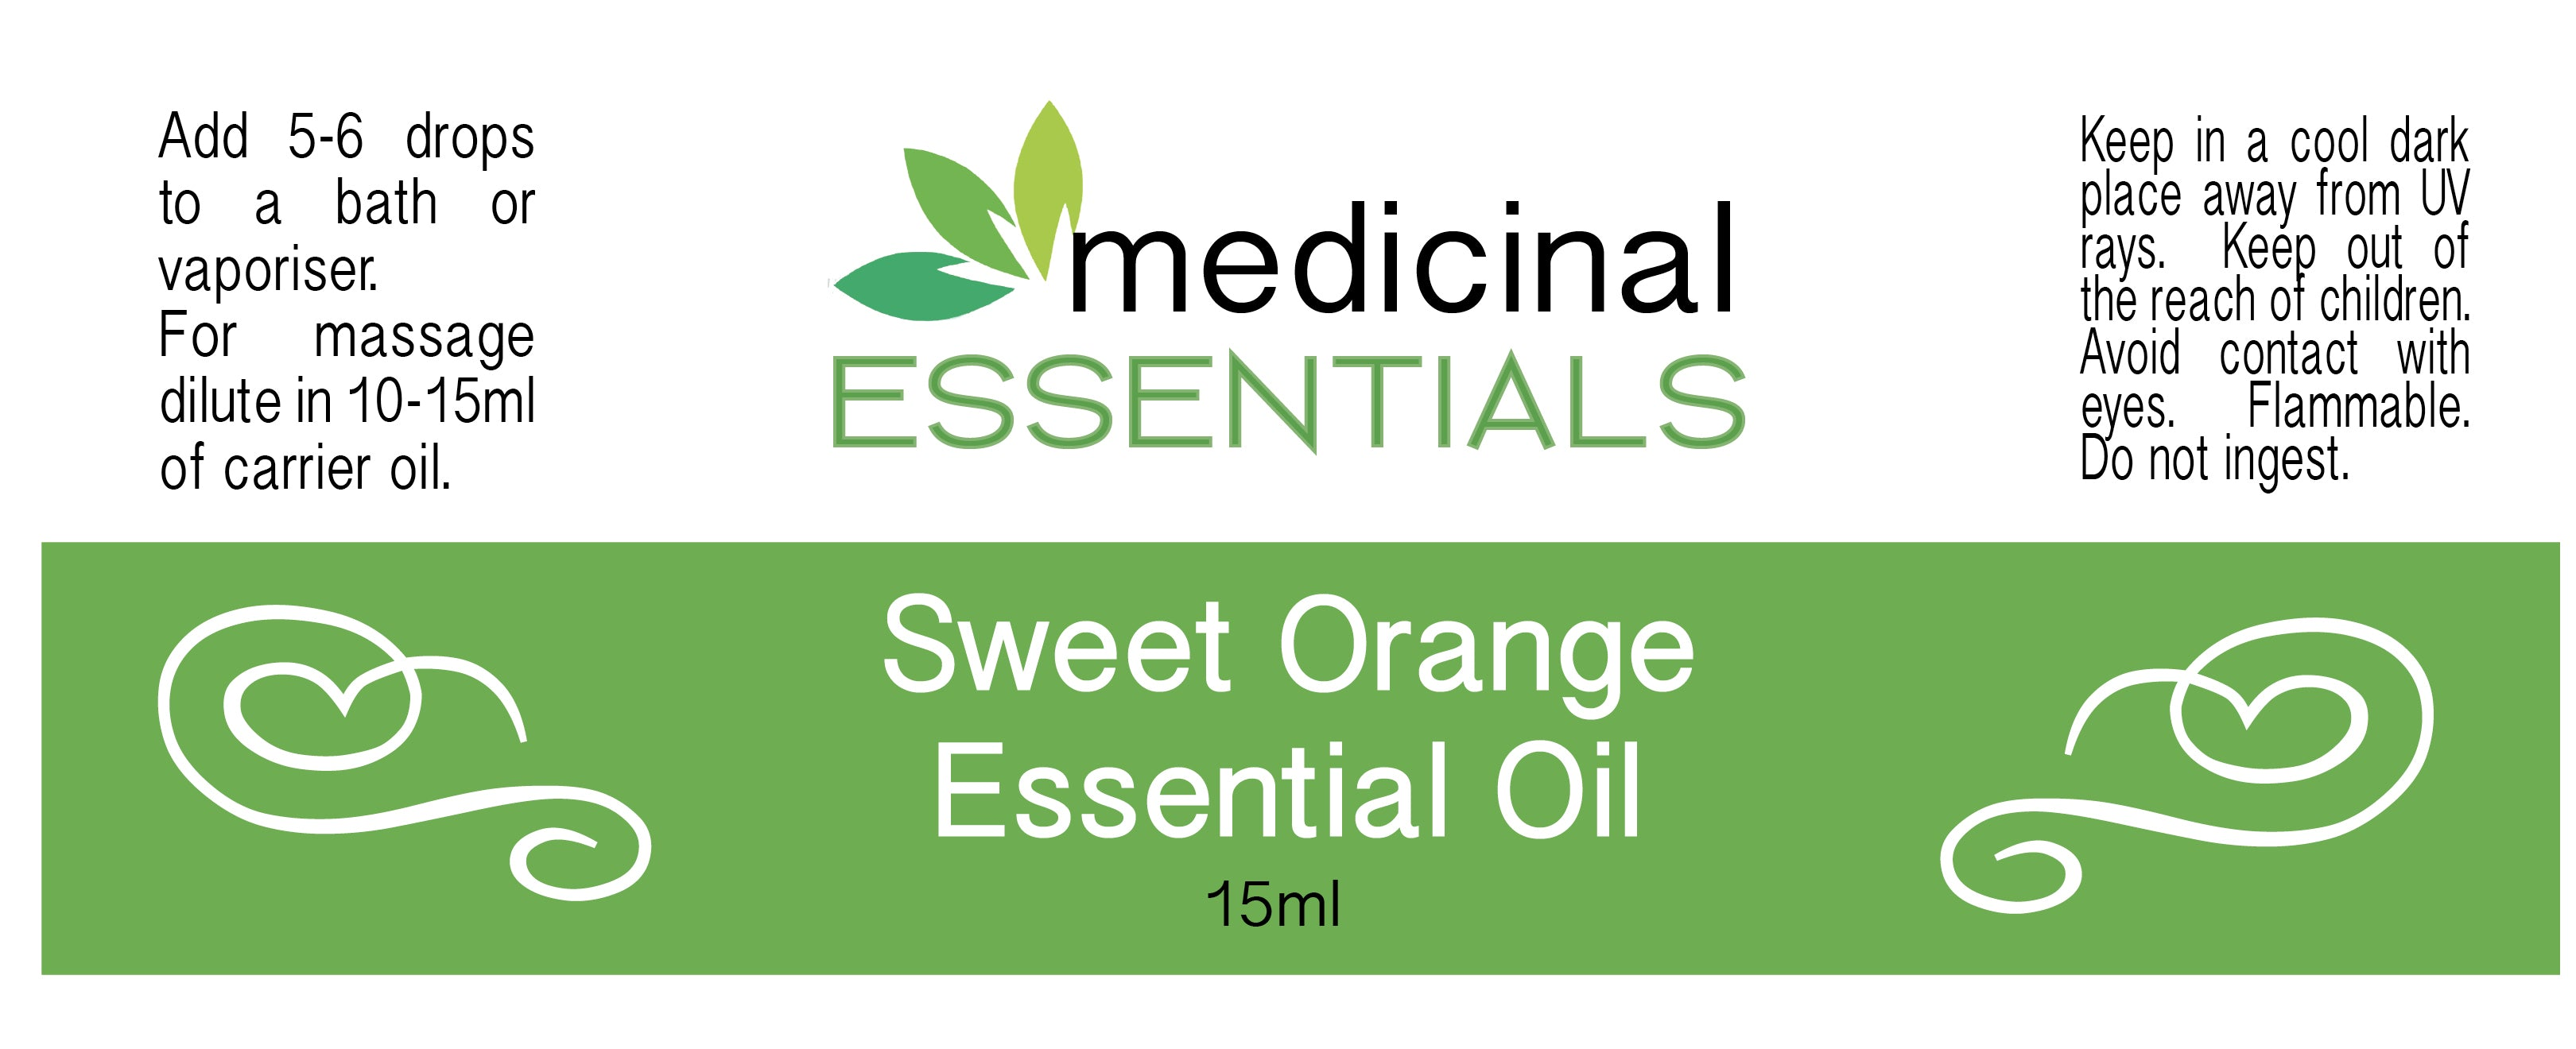 Sweet Orange Essential Oil – 15ml